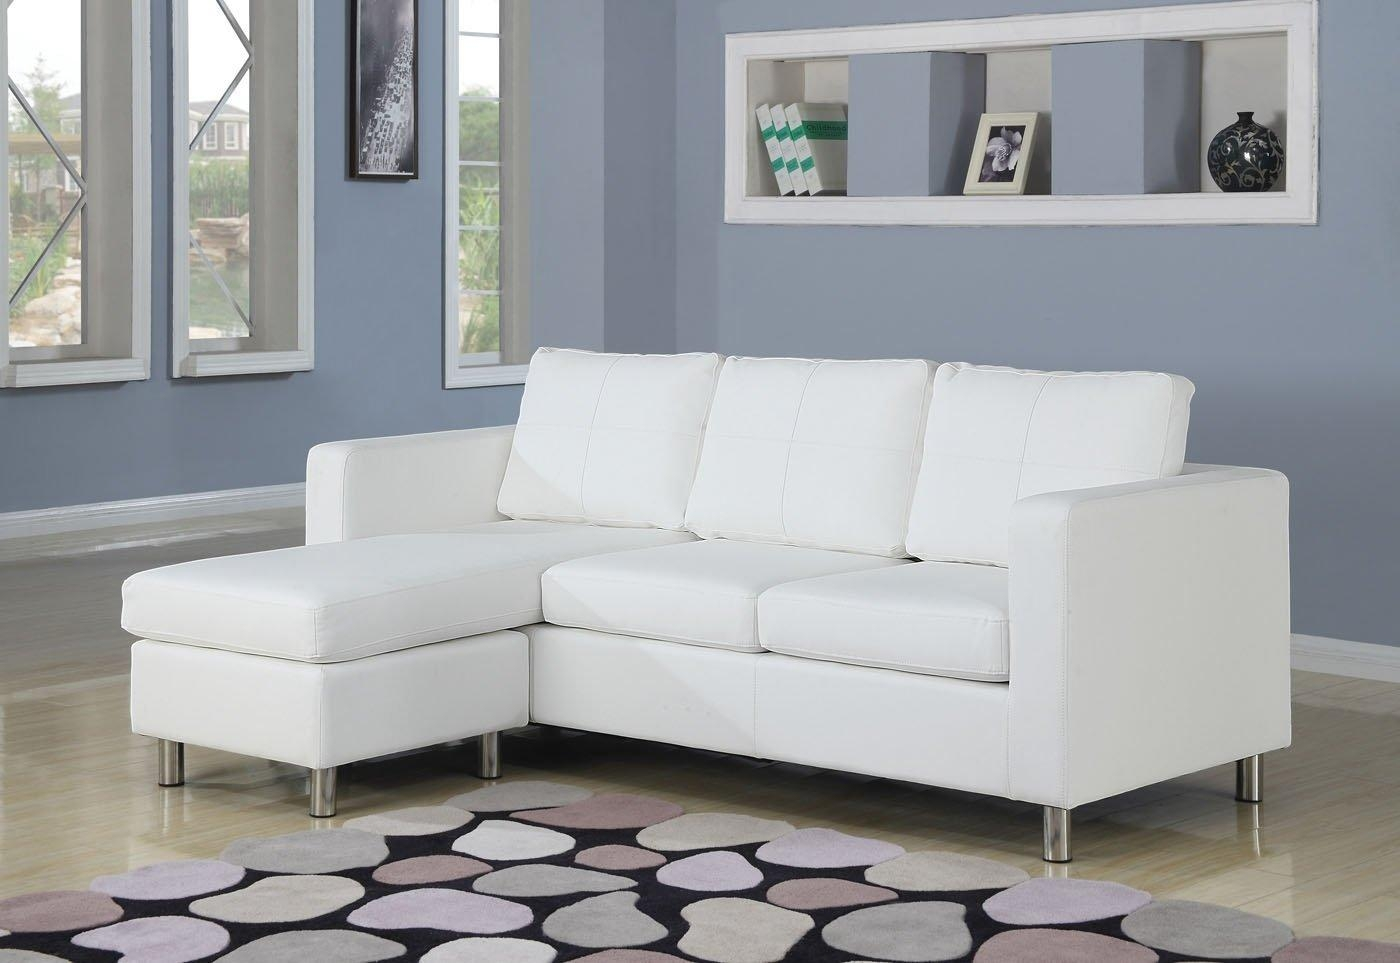 Small Scale Leather Sofa | Tehranmix Decoration Within Small Scale Sofas (Image 7 of 20)